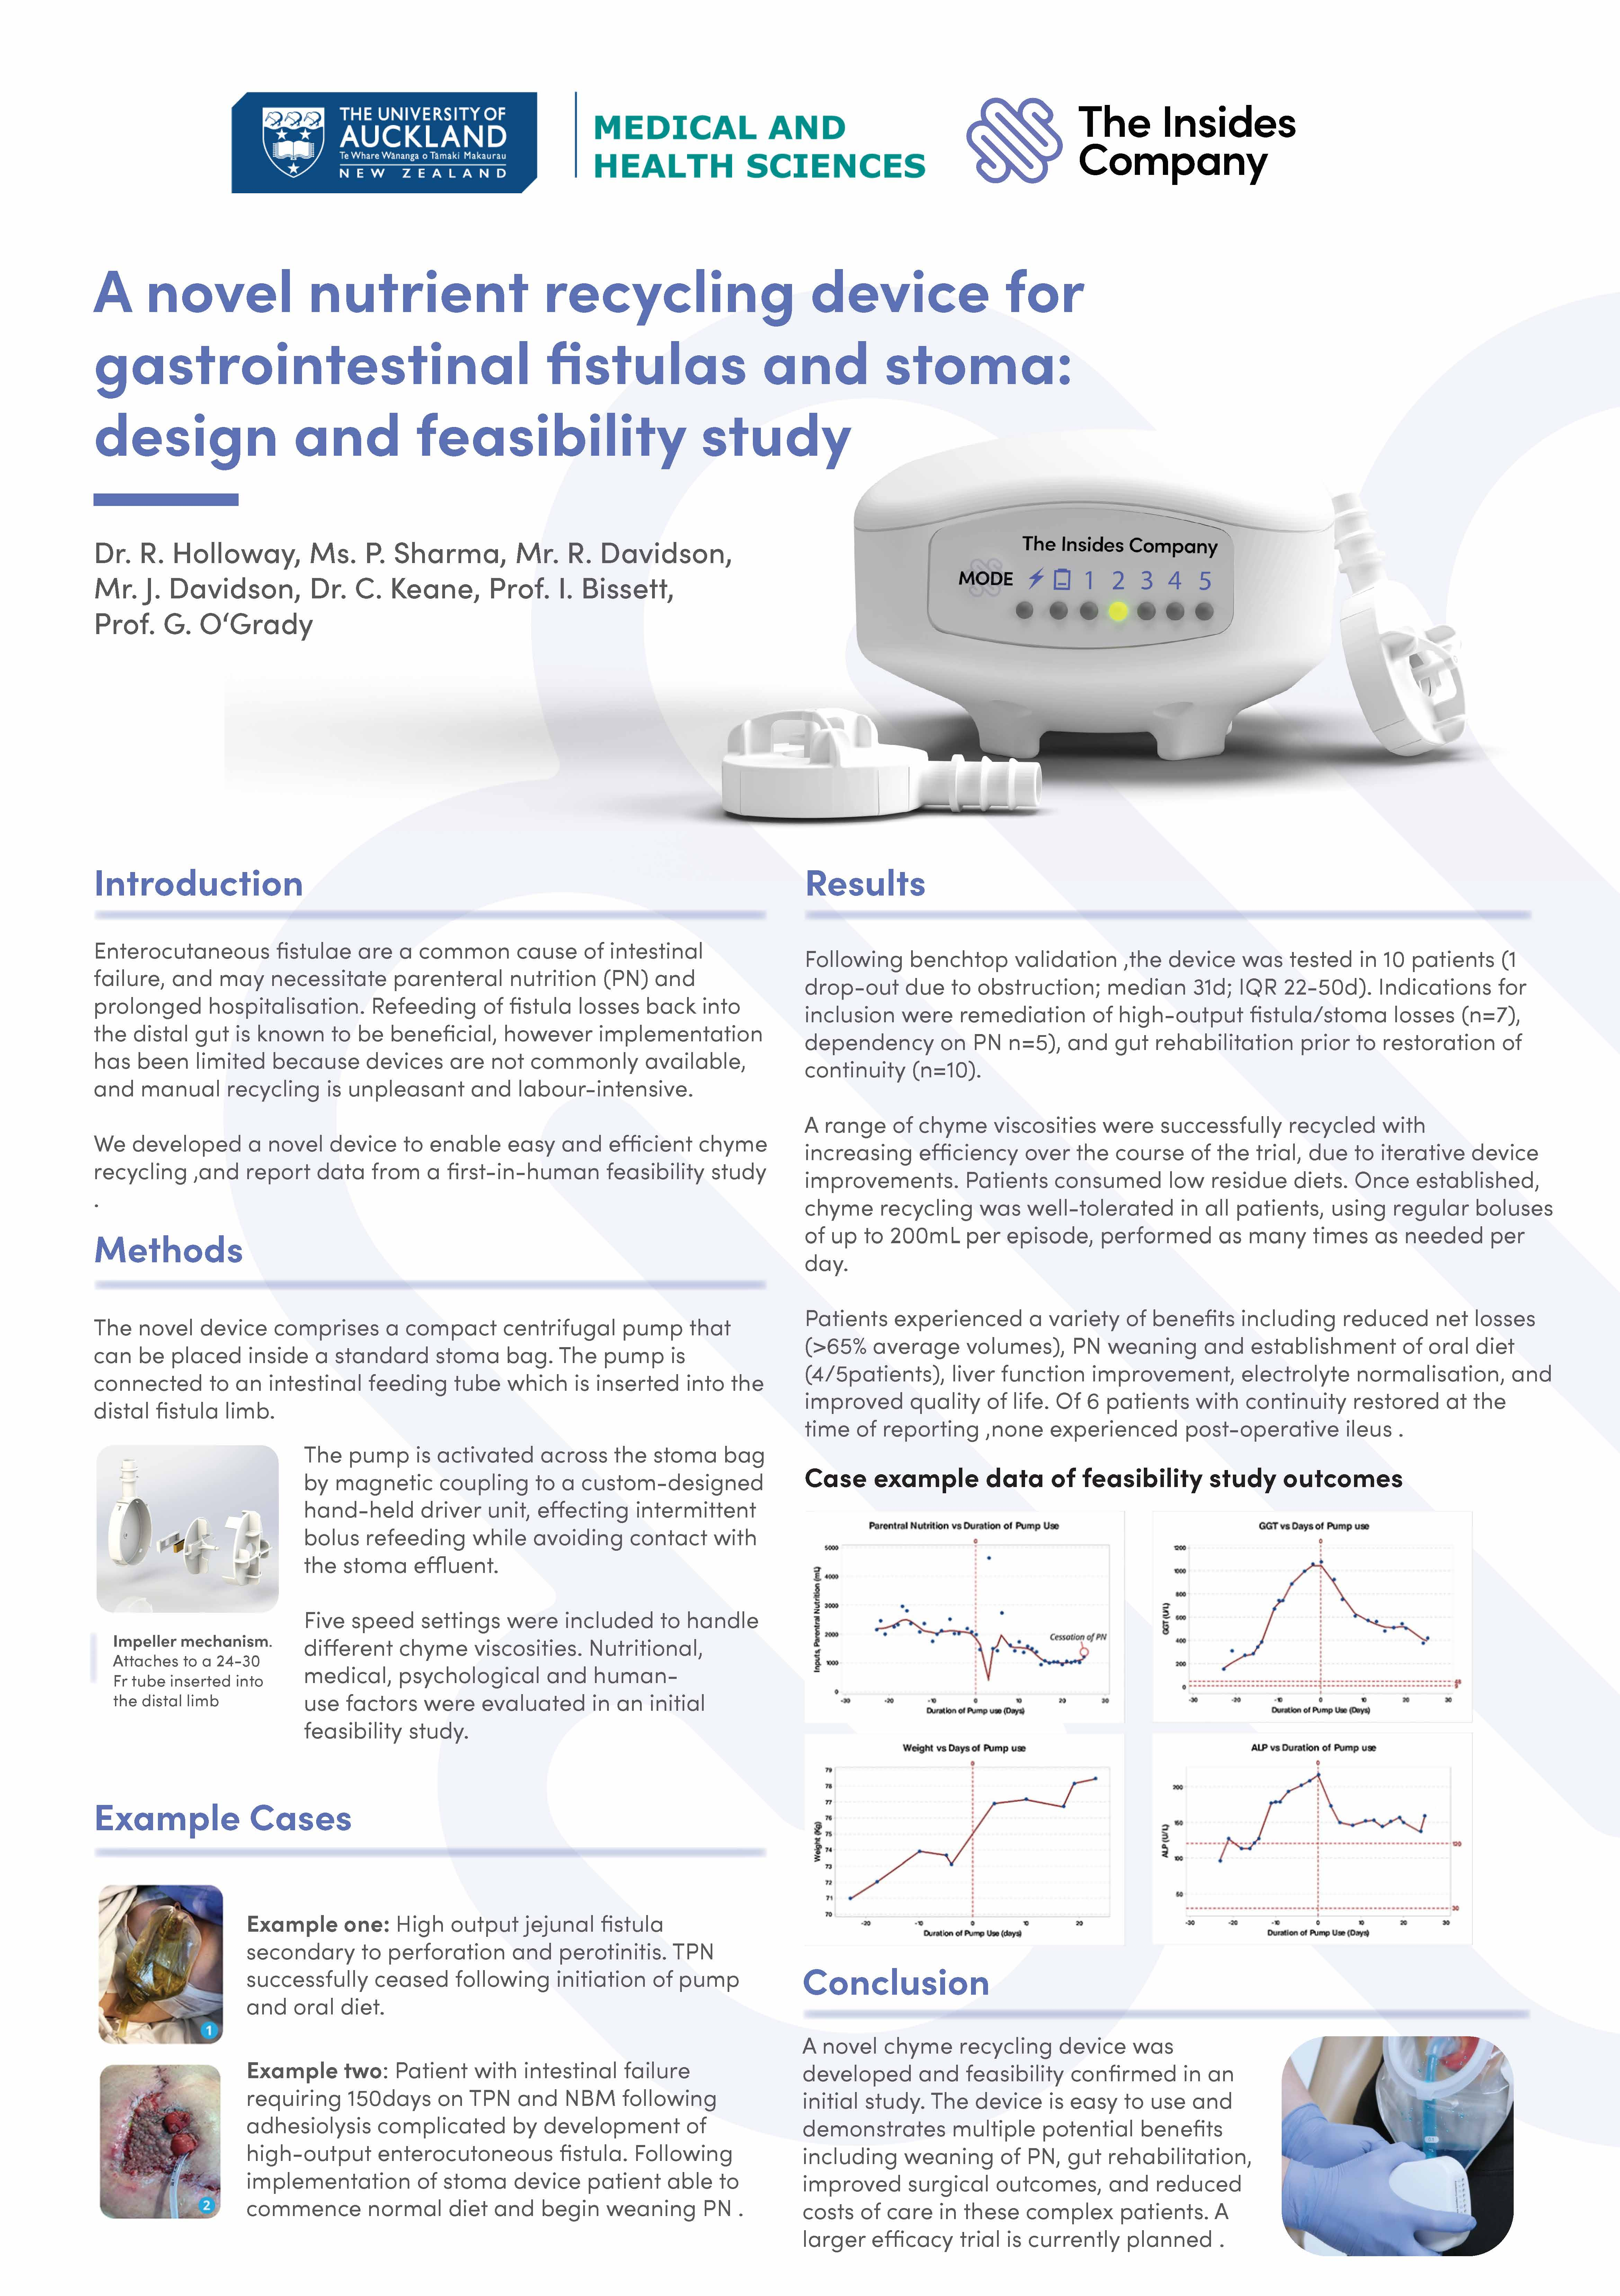 A novel nutrient recycling device for gastrointestinal fistulas and stoma - design and feasibility study